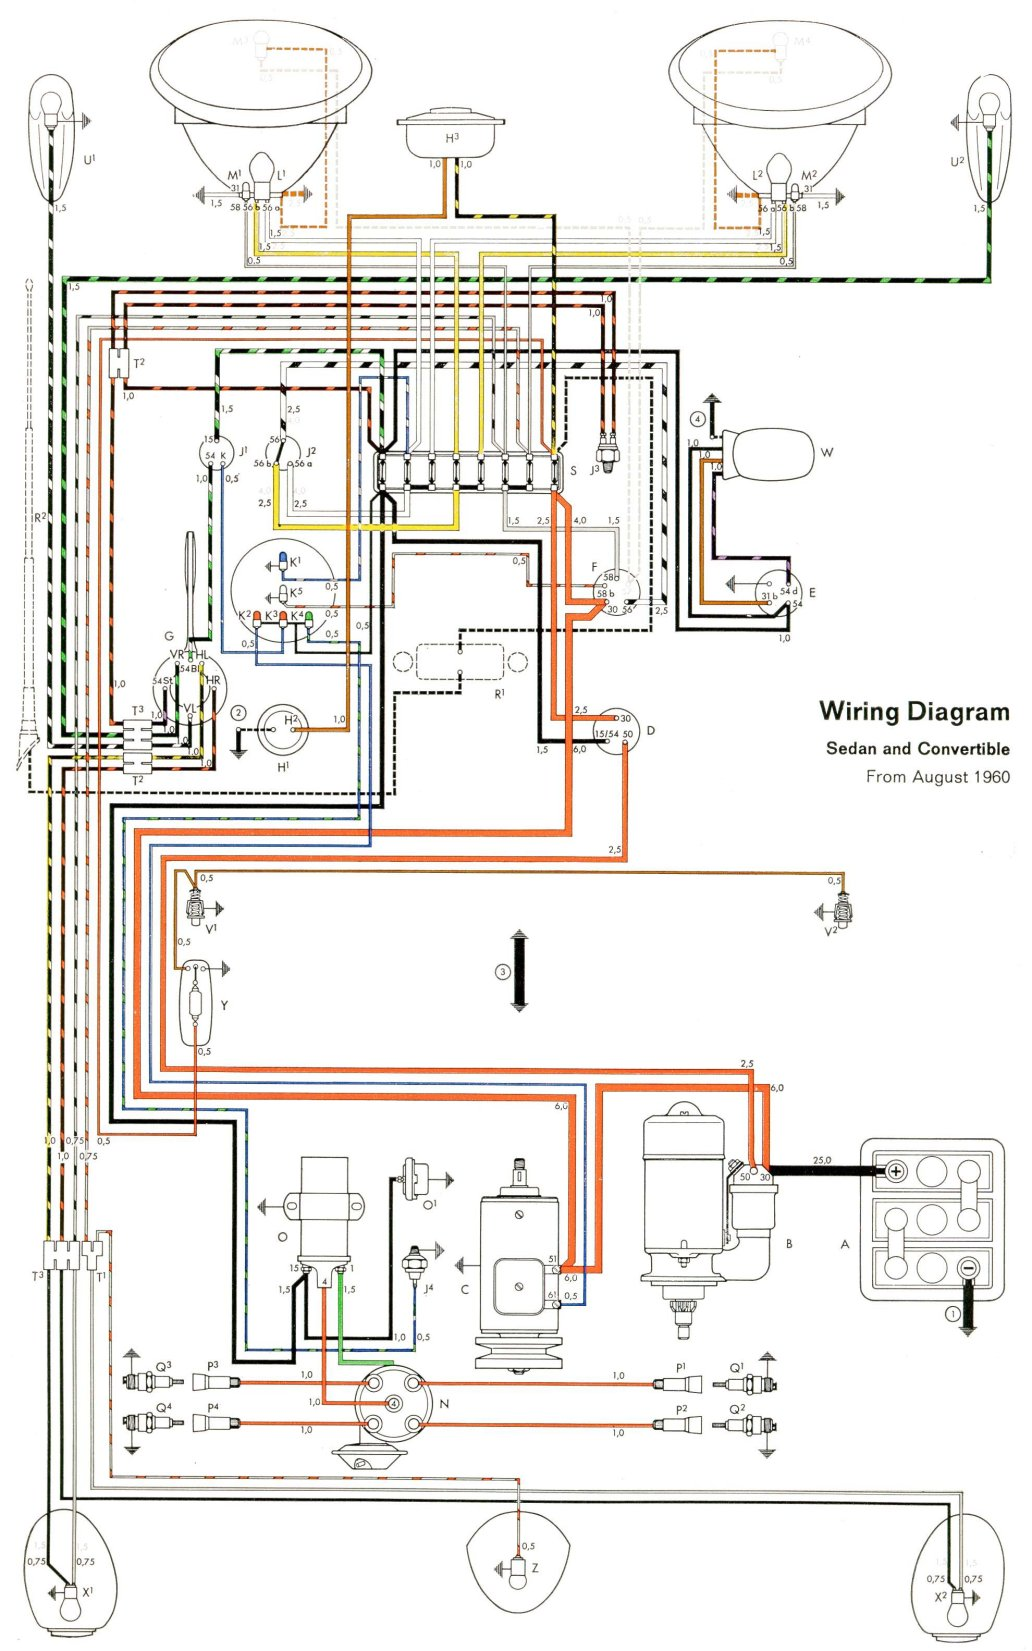 thesamba com type 1 wiring diagrams 2001 Volkswagen Beetle Wiring Diagram 1960 Vw Beetle Wiring Diagram #3